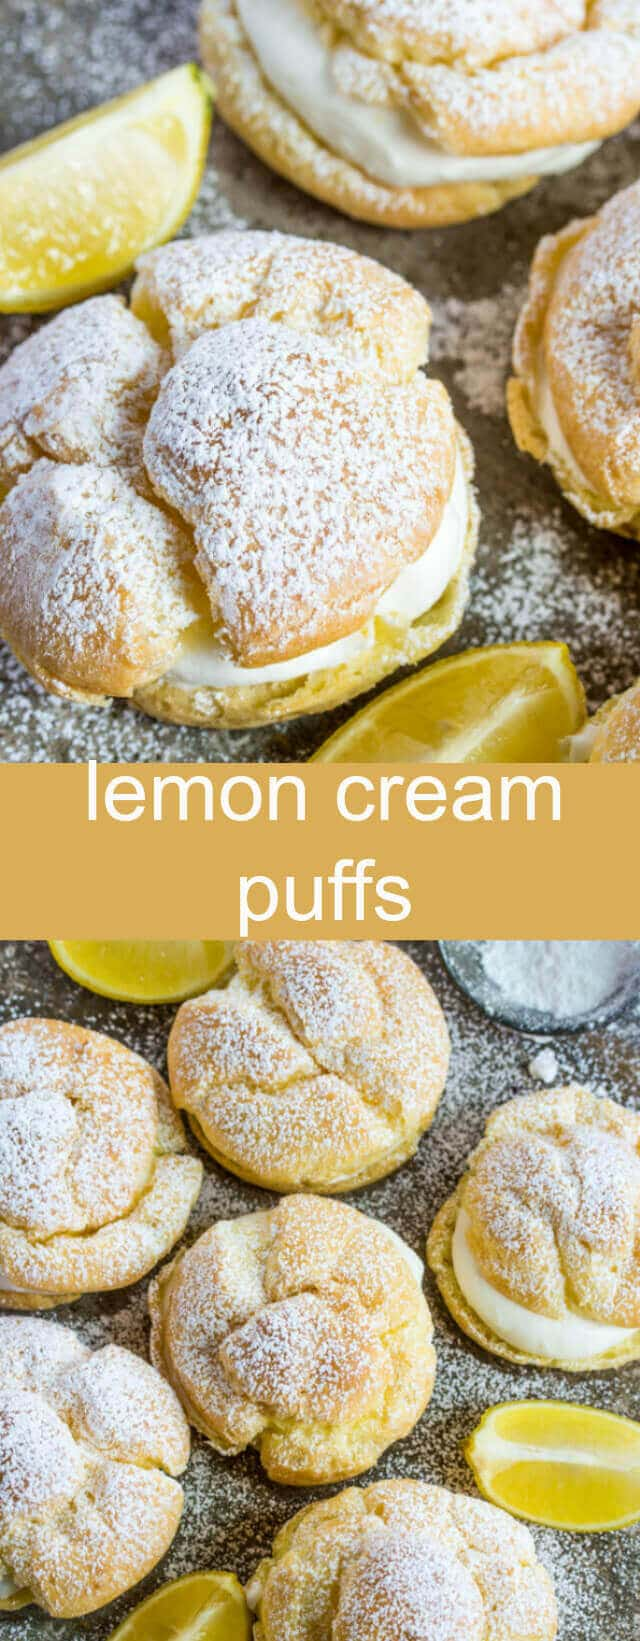 Lemon Cream Puffs {An Easy Lemon Twist on a Classic Recipe} cream puff/lemon/dessert Light and delicious these Lemon Cream Puffs are baked until puffy and filled with a light lemon cream filling! A perfect addition to your dessert line!